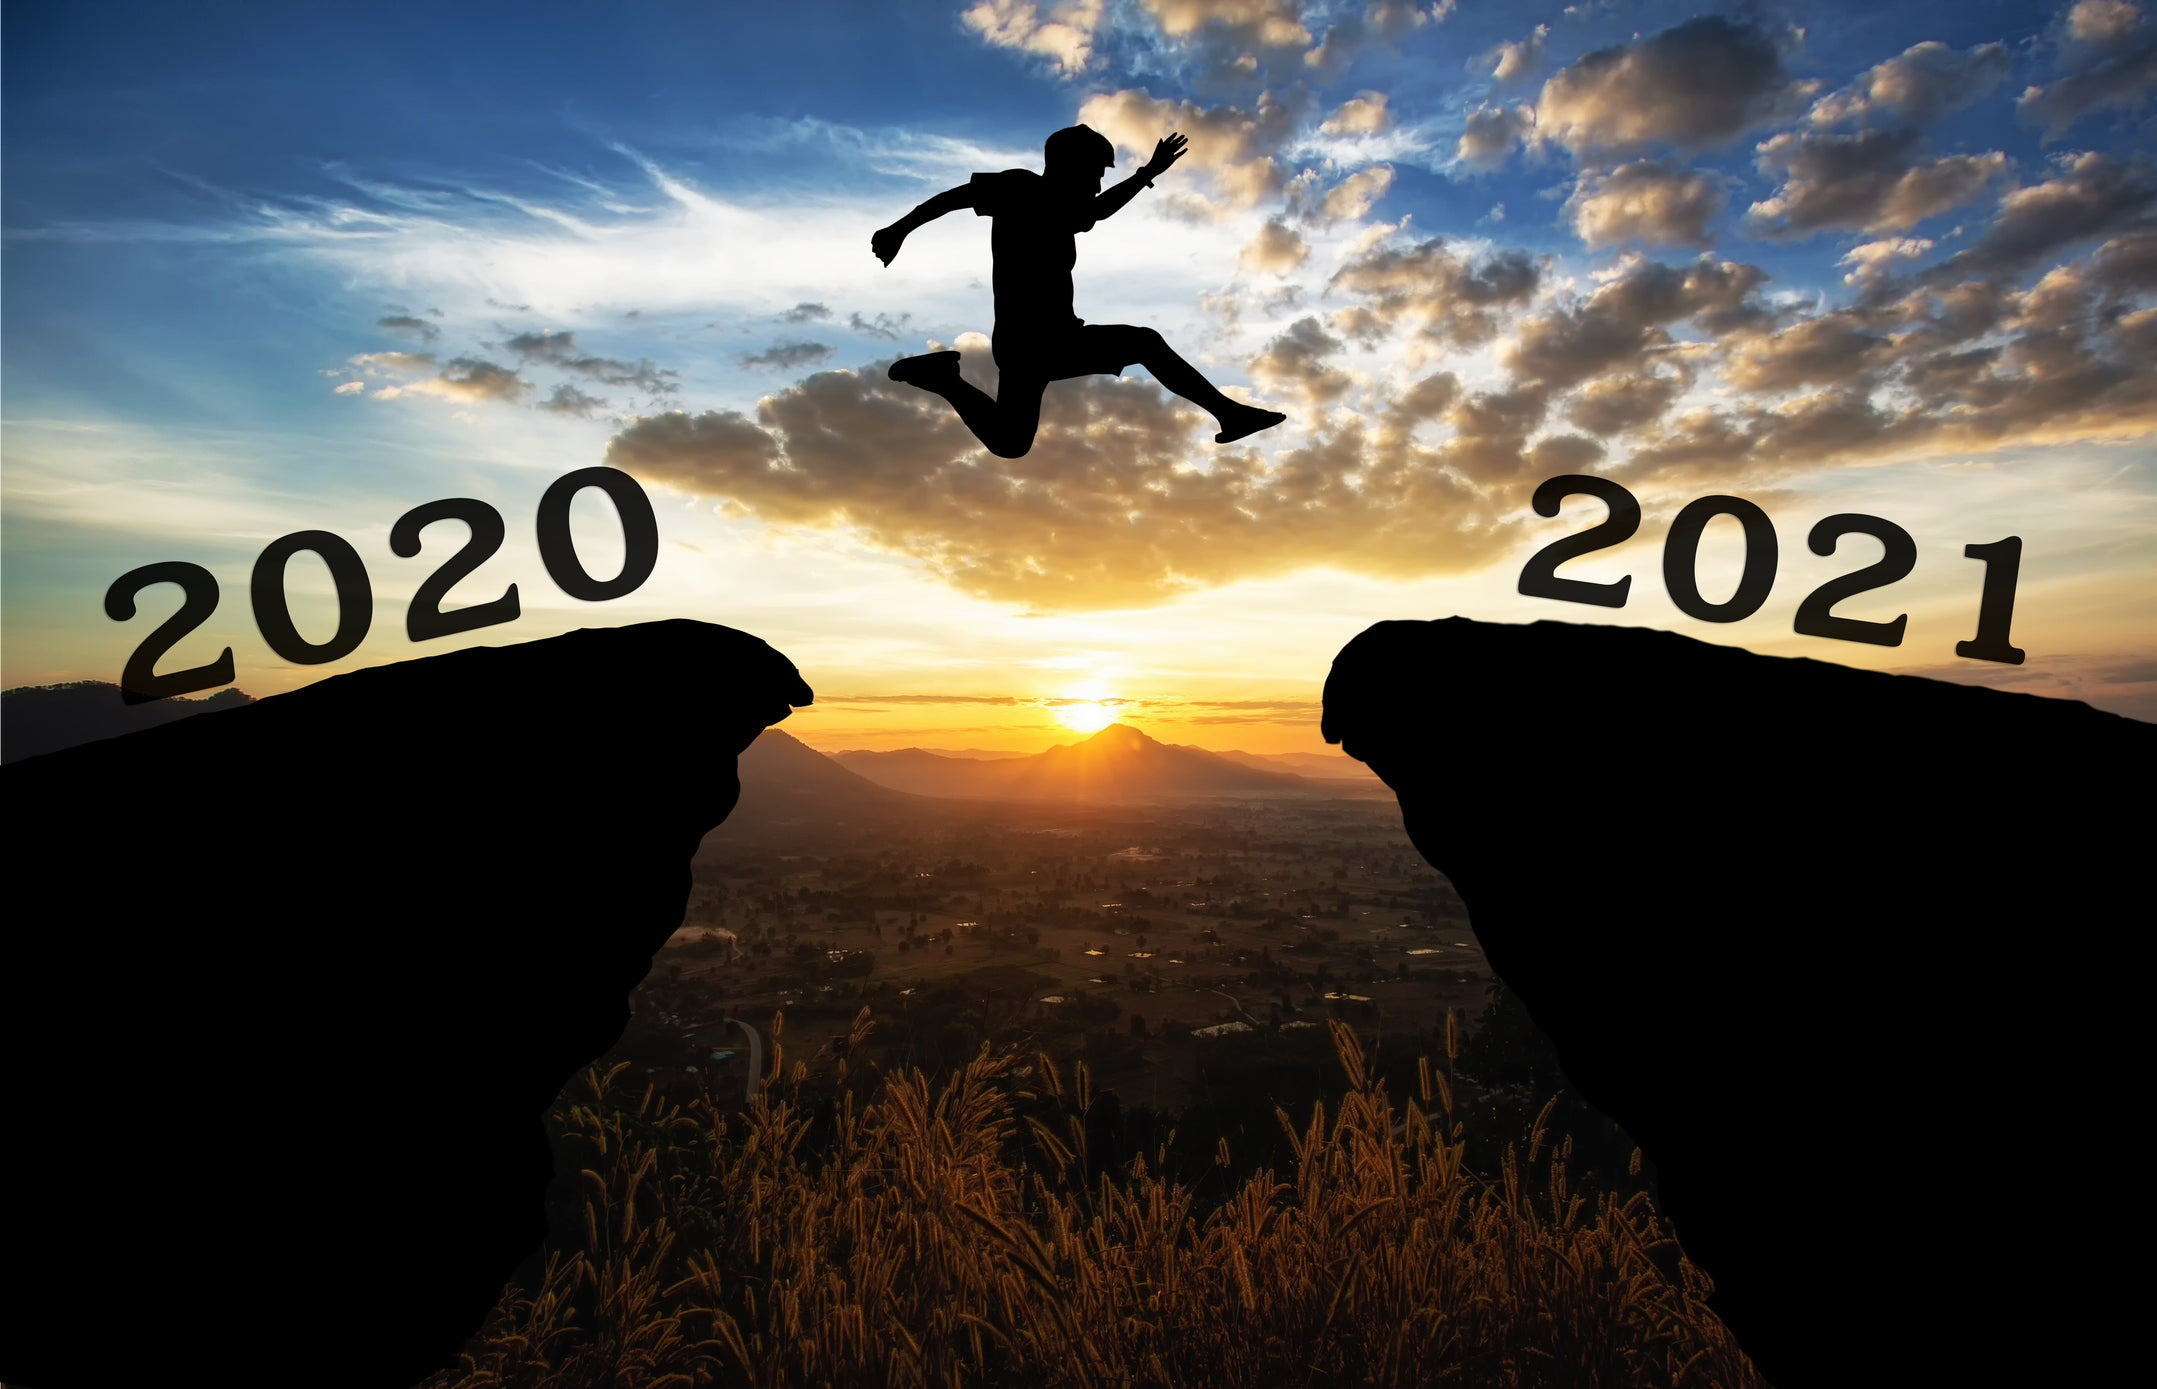 Best Index Funds 2021 7 Top Stocks to Play 3 Hot Trends in 2021 | The Motley Fool